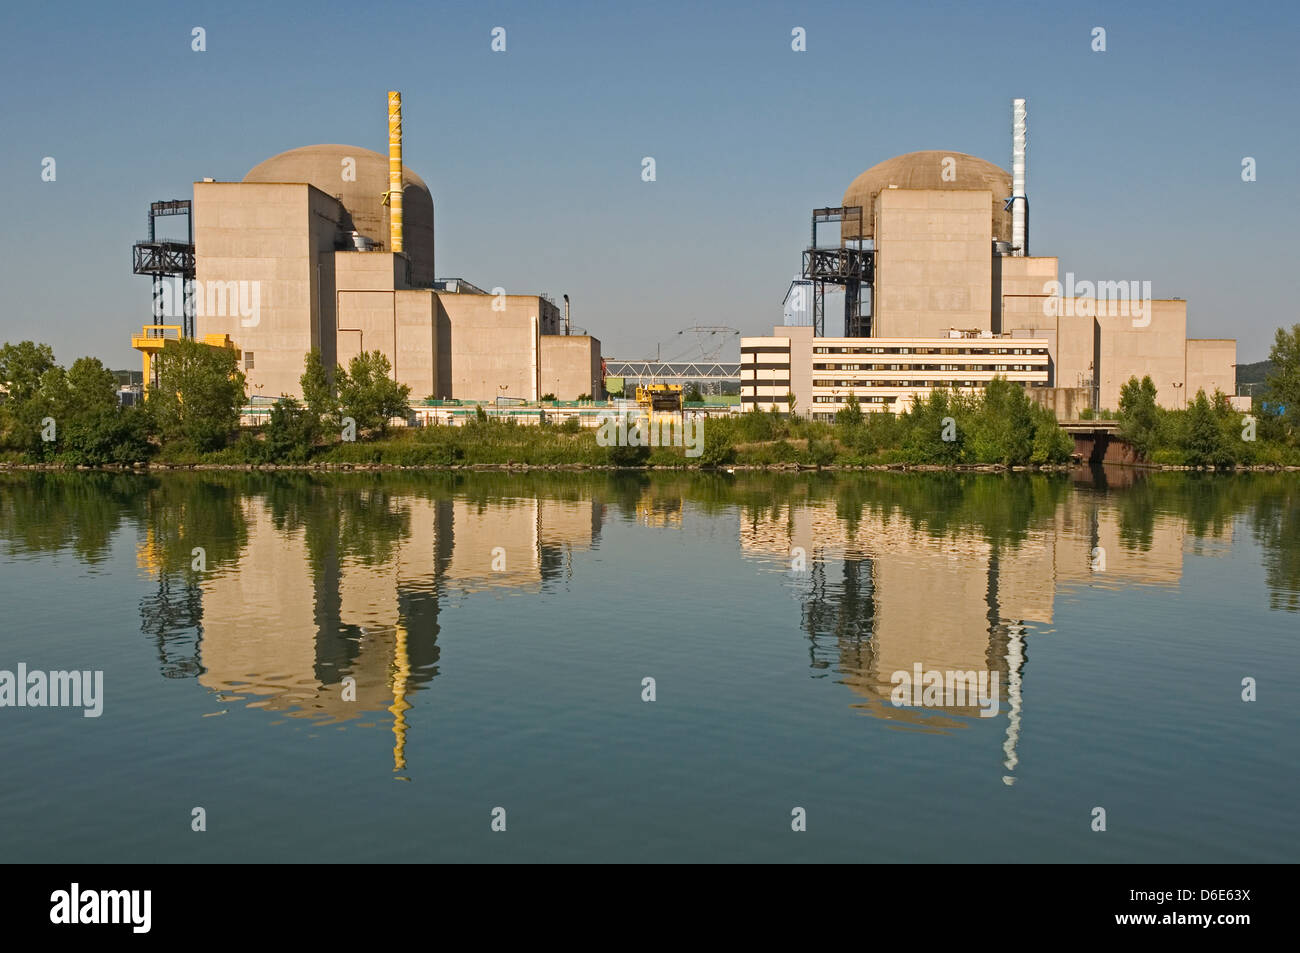 EUROPE, FRANCE, St Alban and St Maurice Nuclear Power Station on the River Rhone near Condrieu - Stock Image